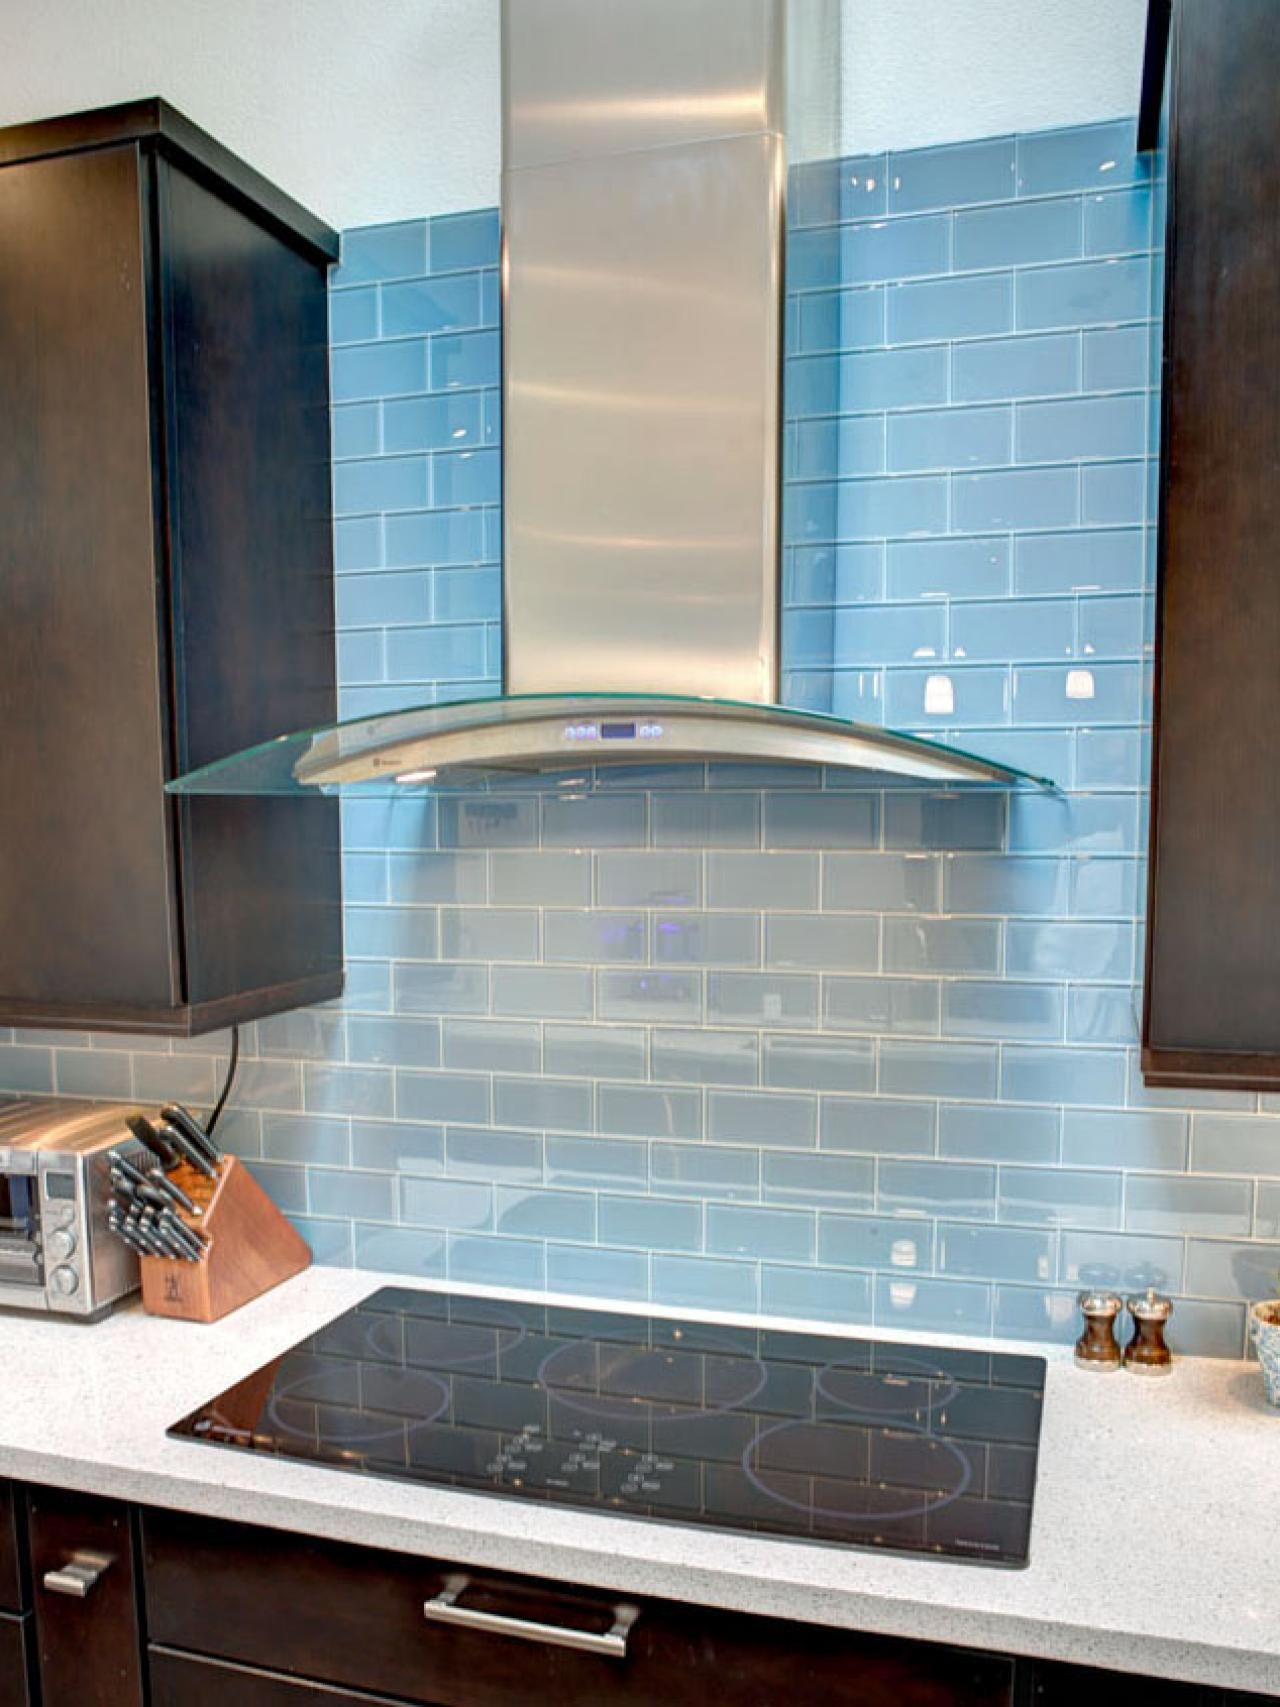 Organic modern kitchen stainless steel steel and kitchens blue subway tile dailygadgetfo Images